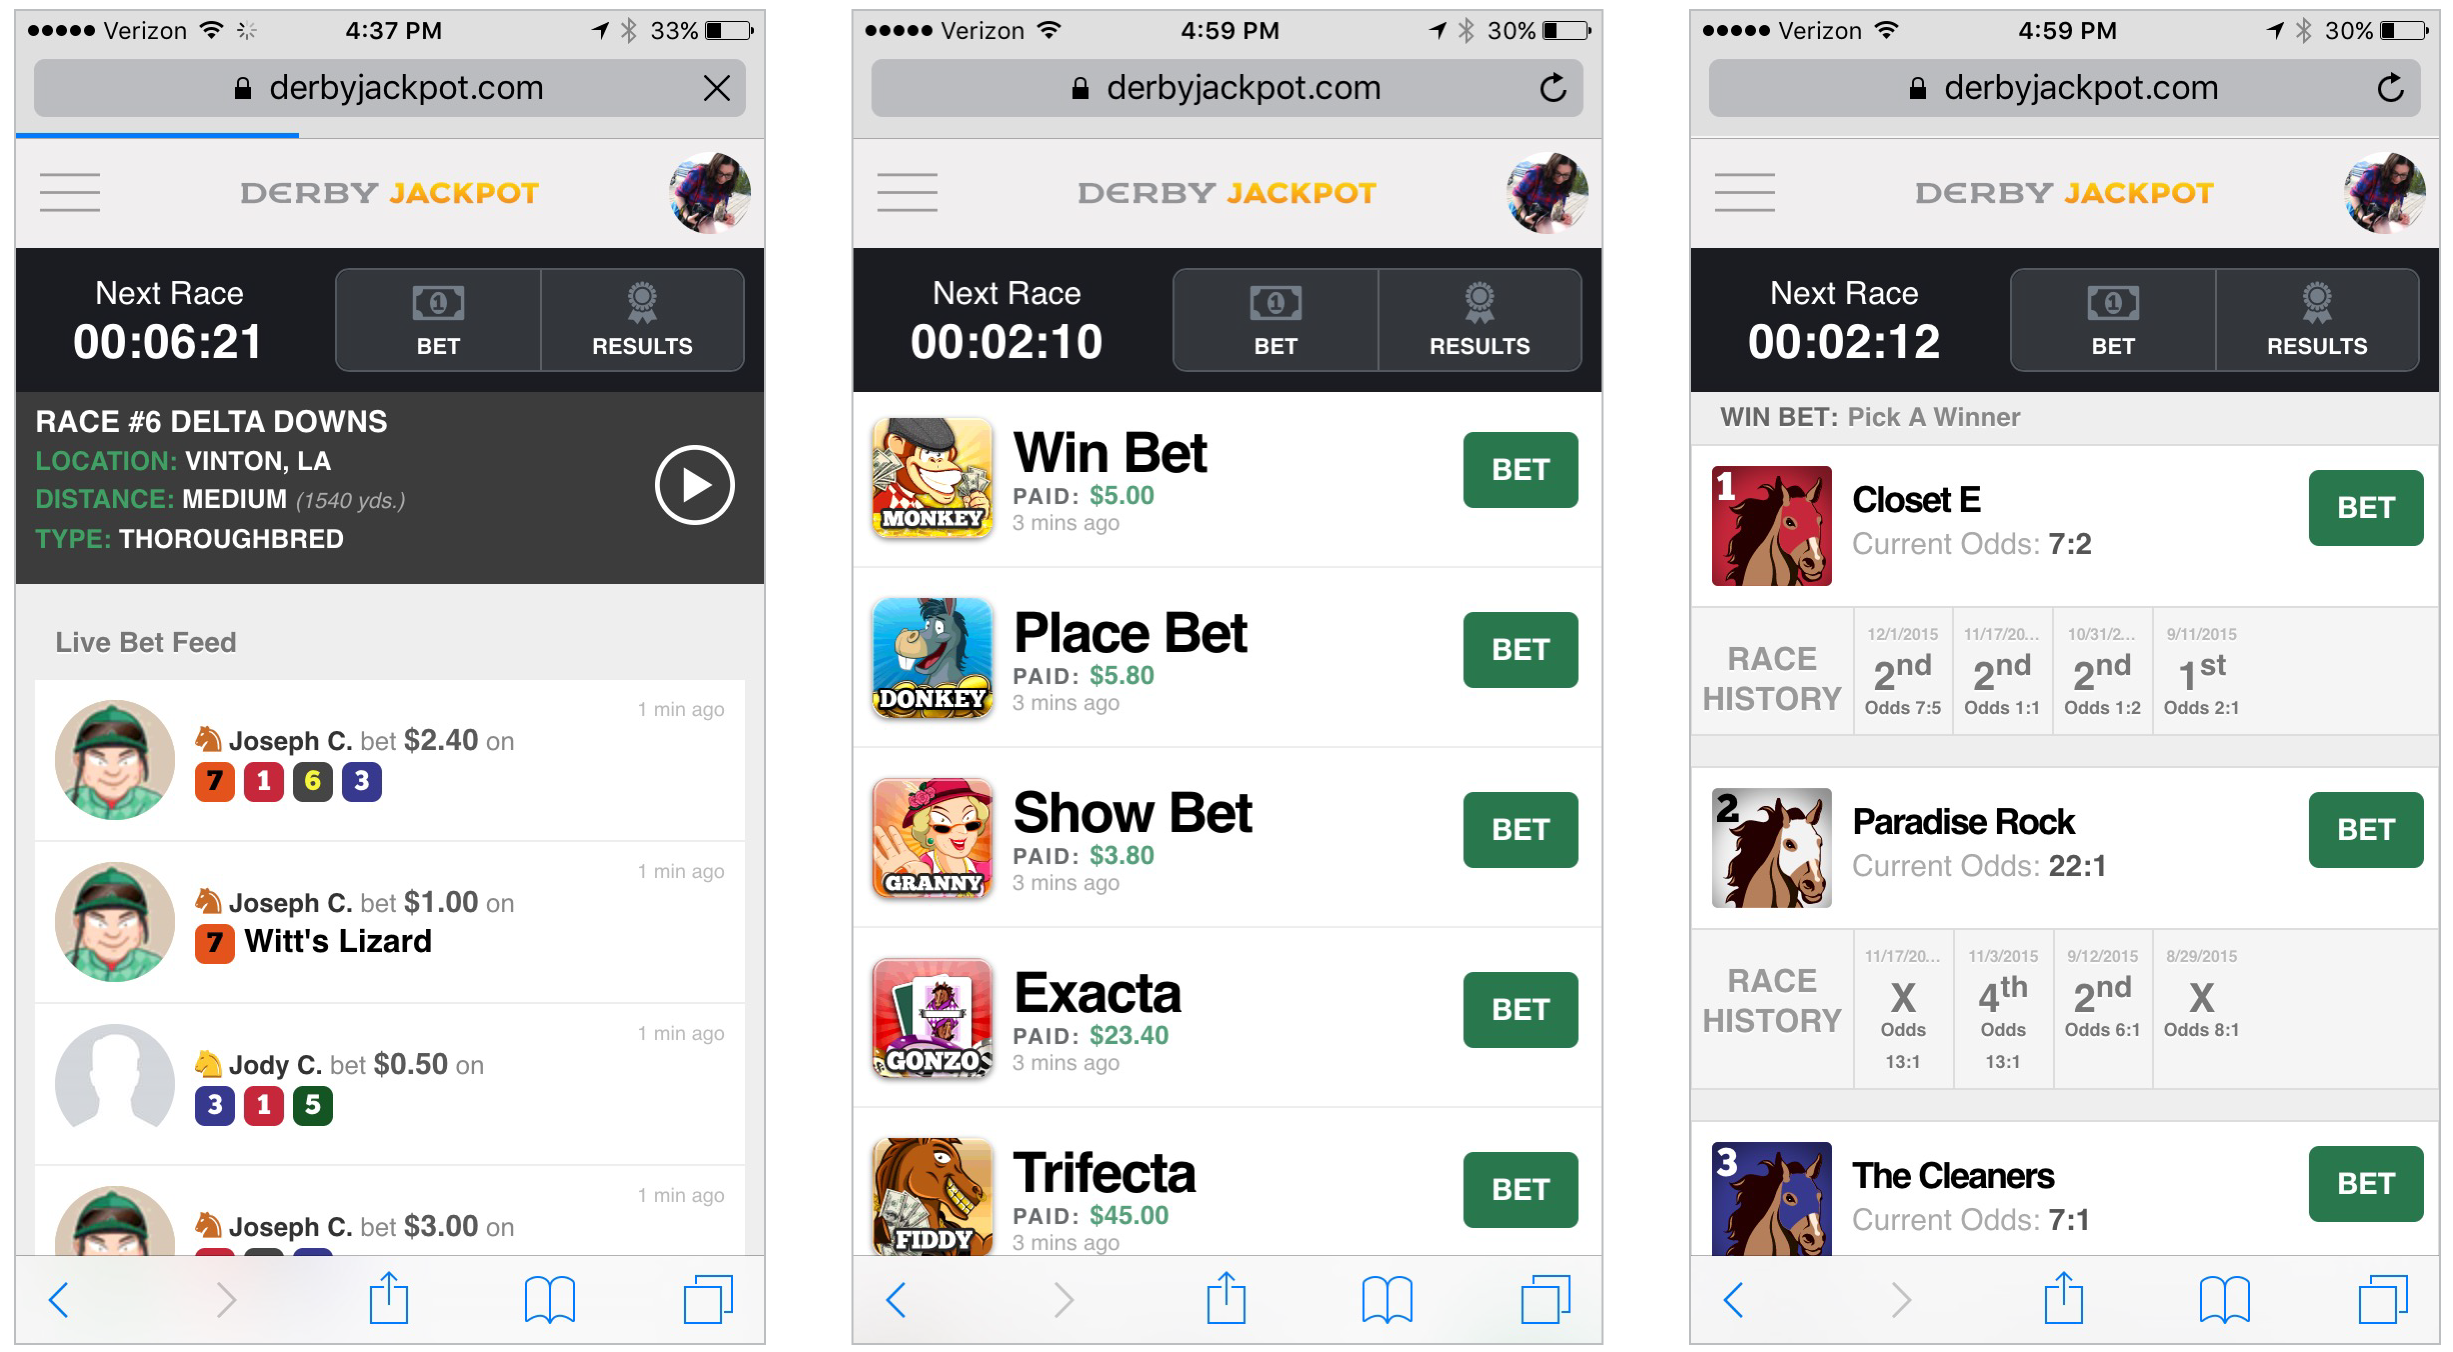 Homepage (far left), bet types page, and Win bet page.